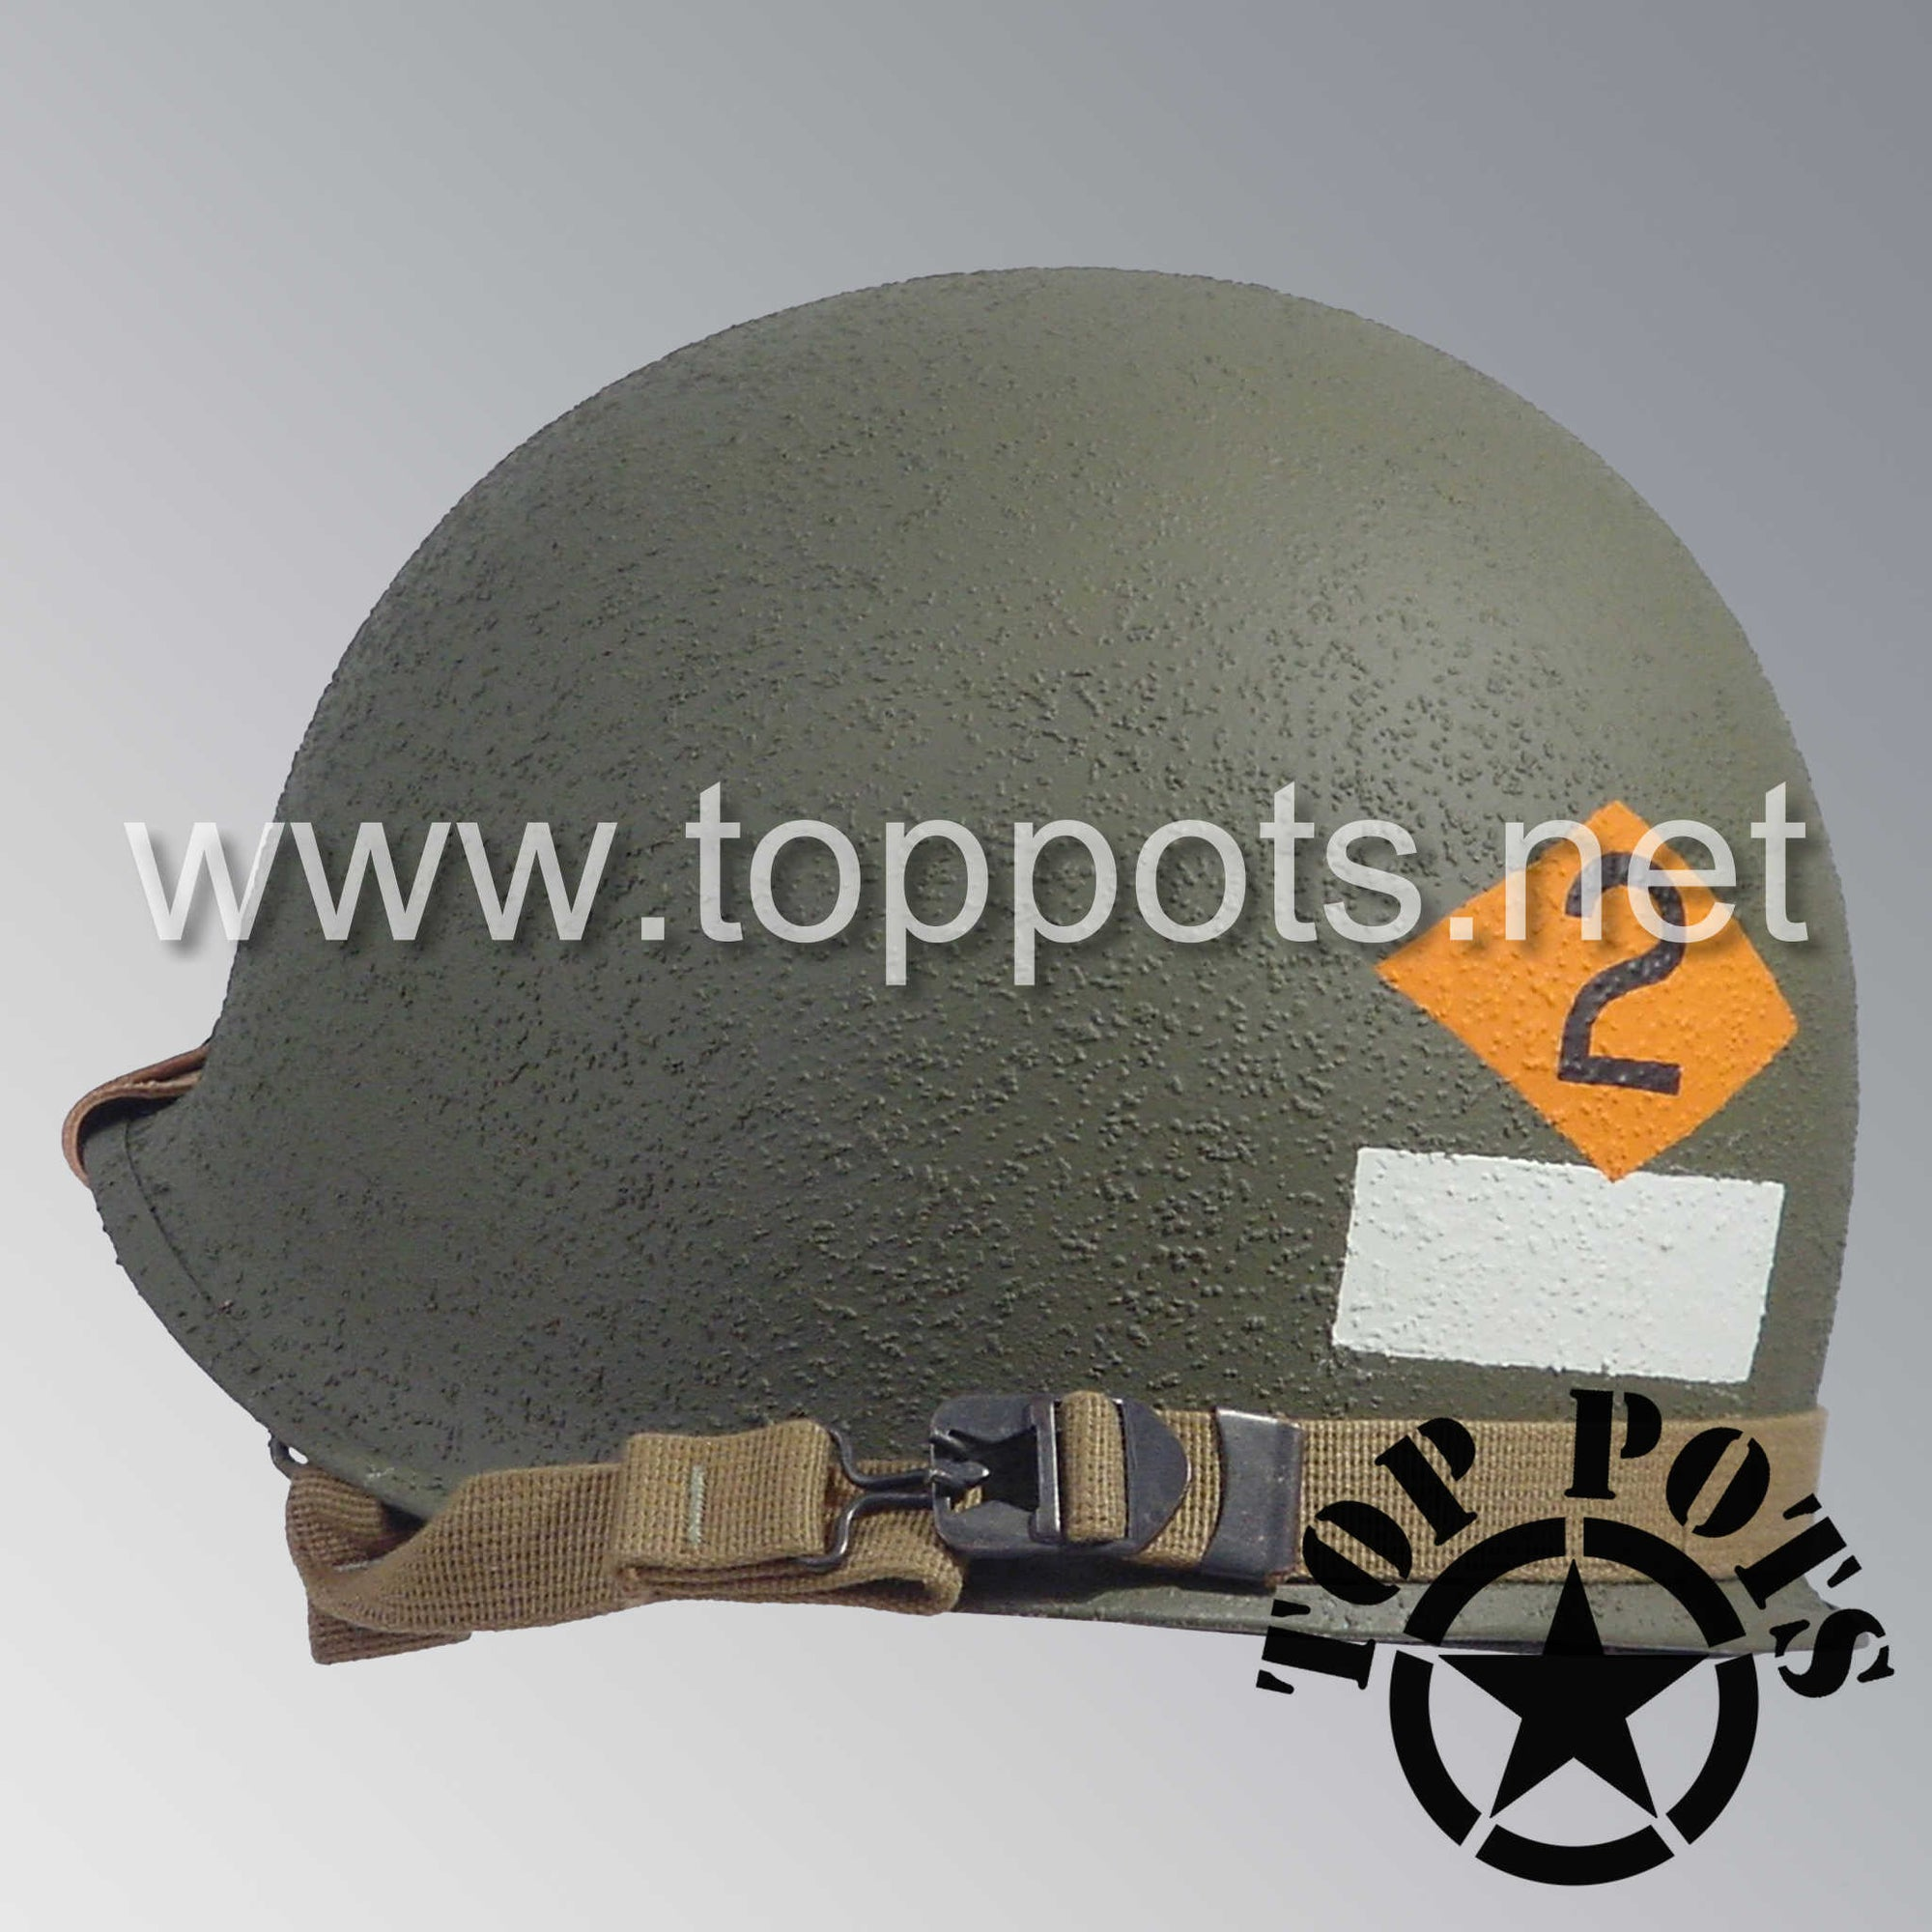 Image 5 of WWII US Army Restored Original M1 Infantry Helmet Swivel Bale Shell and Liner with 2nd Ranger NCO Emblem